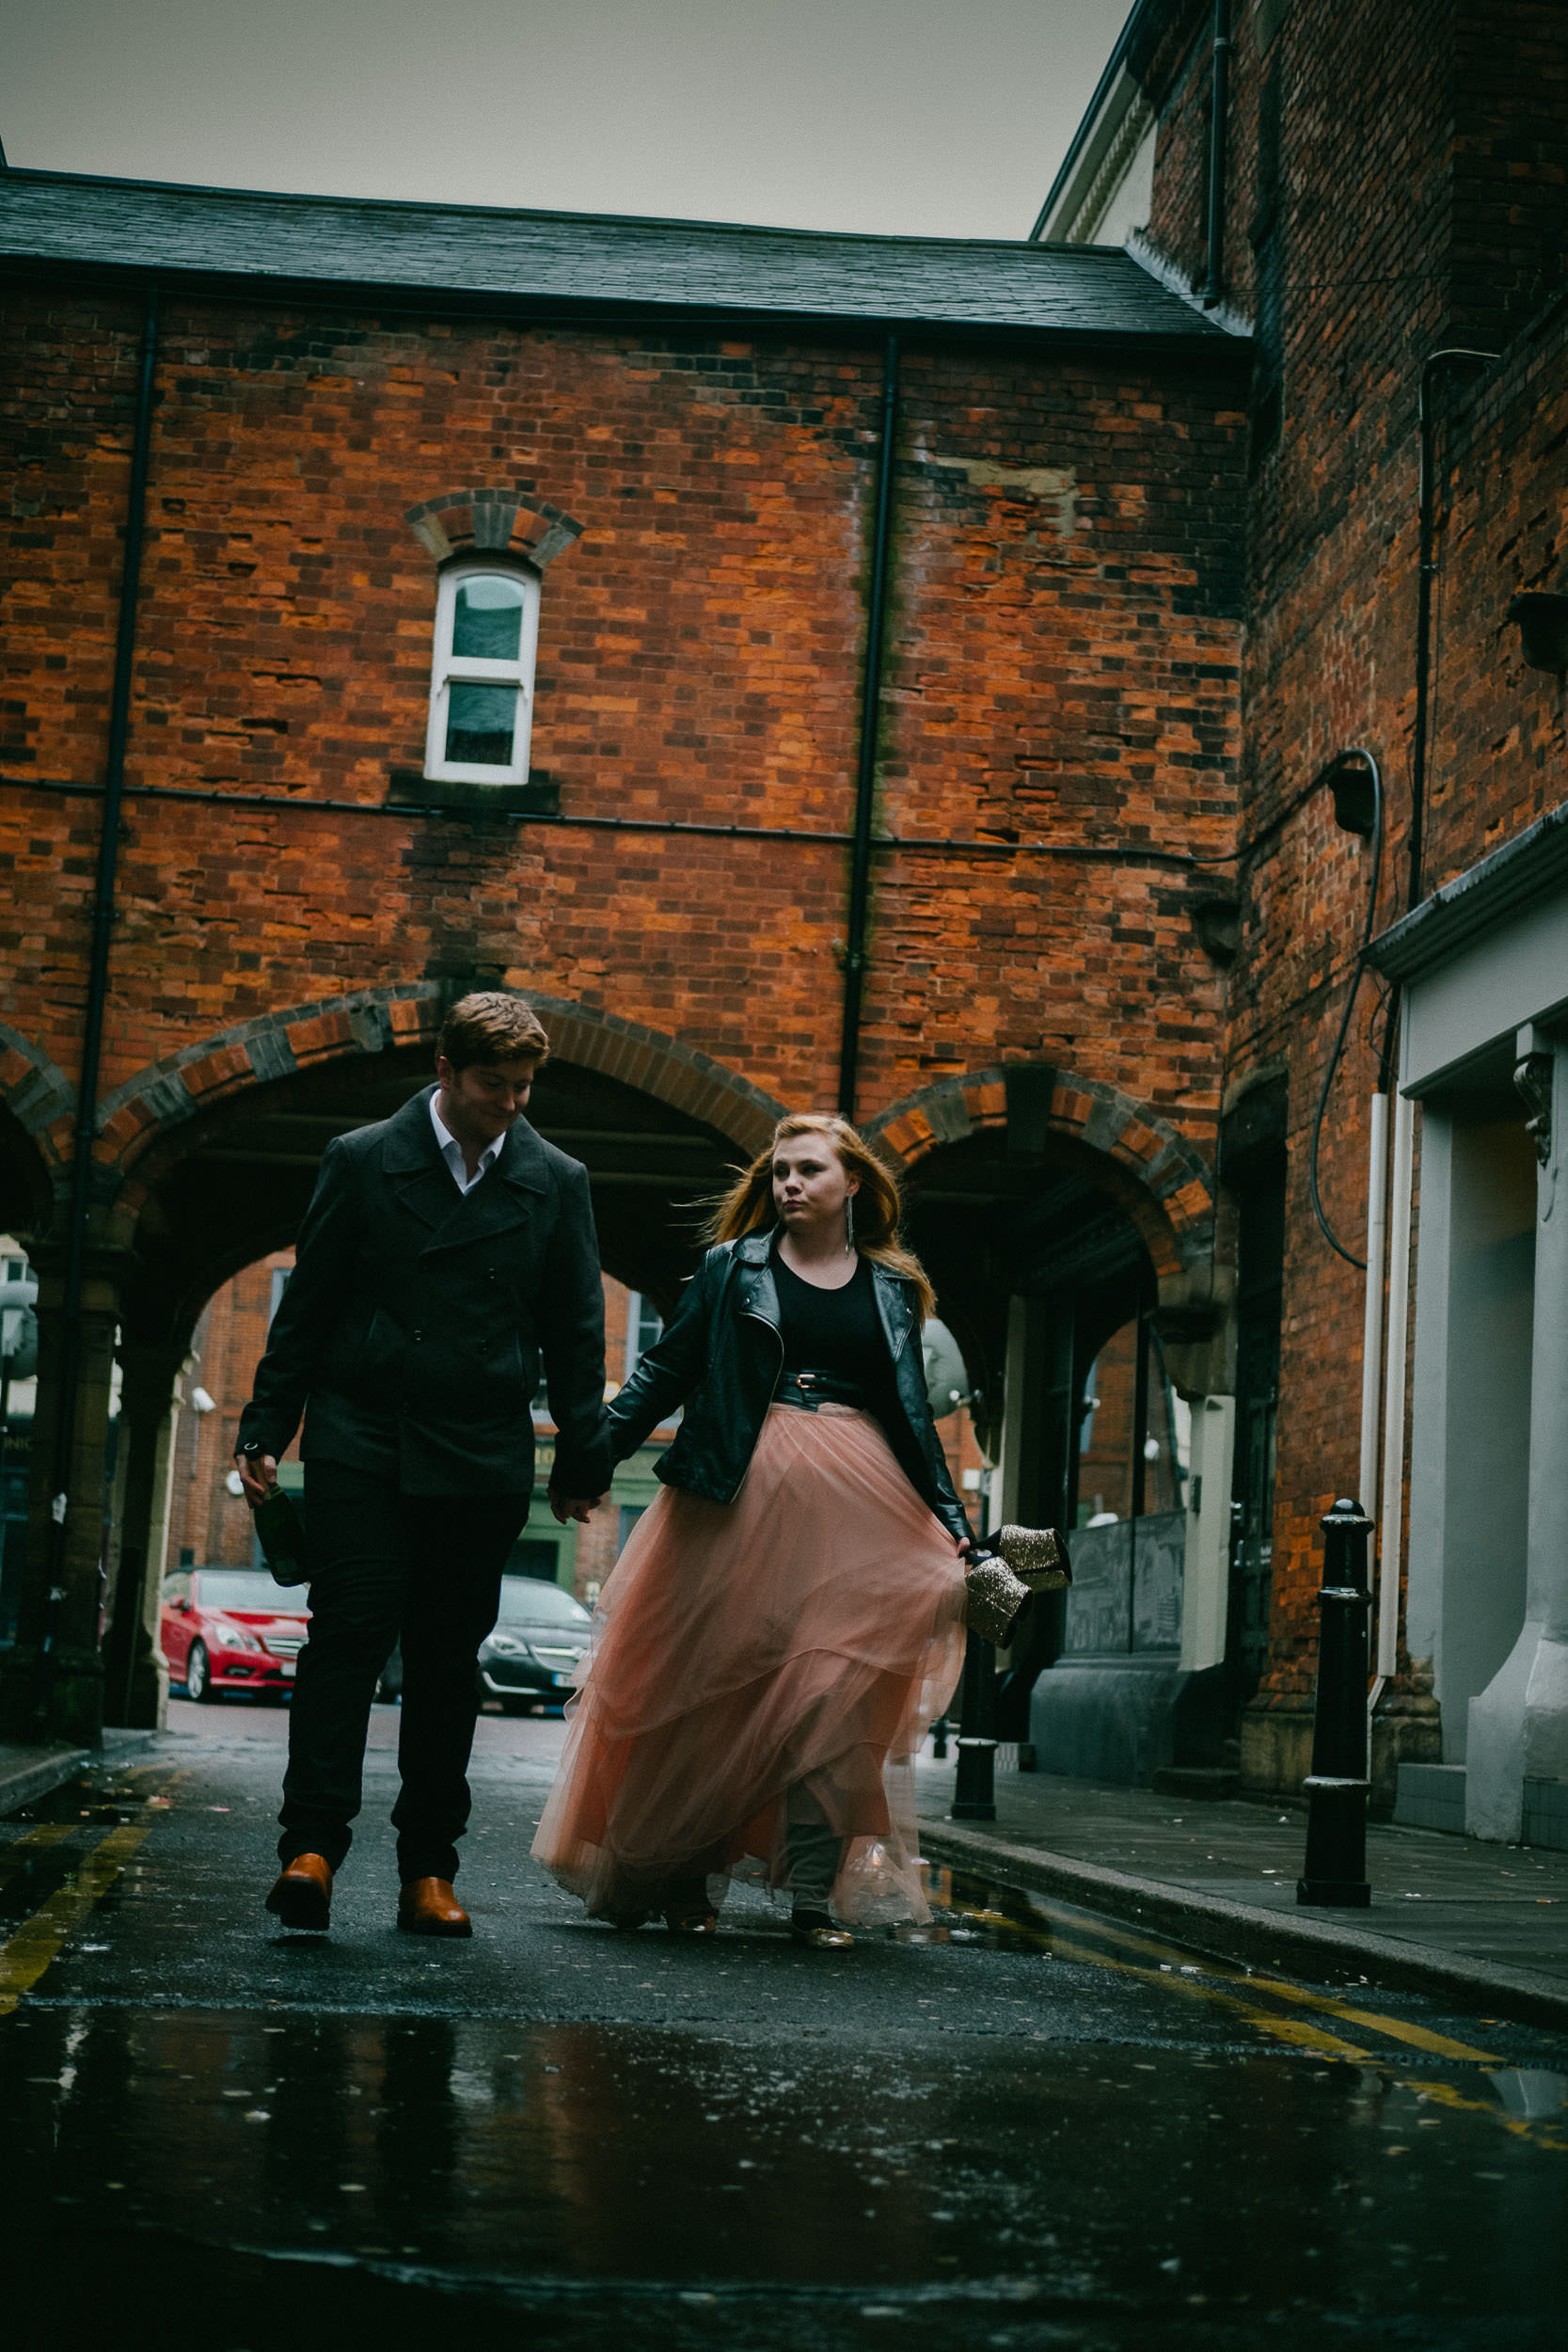 Couple walk up rainy alleyway with girl's dress blowing in wind